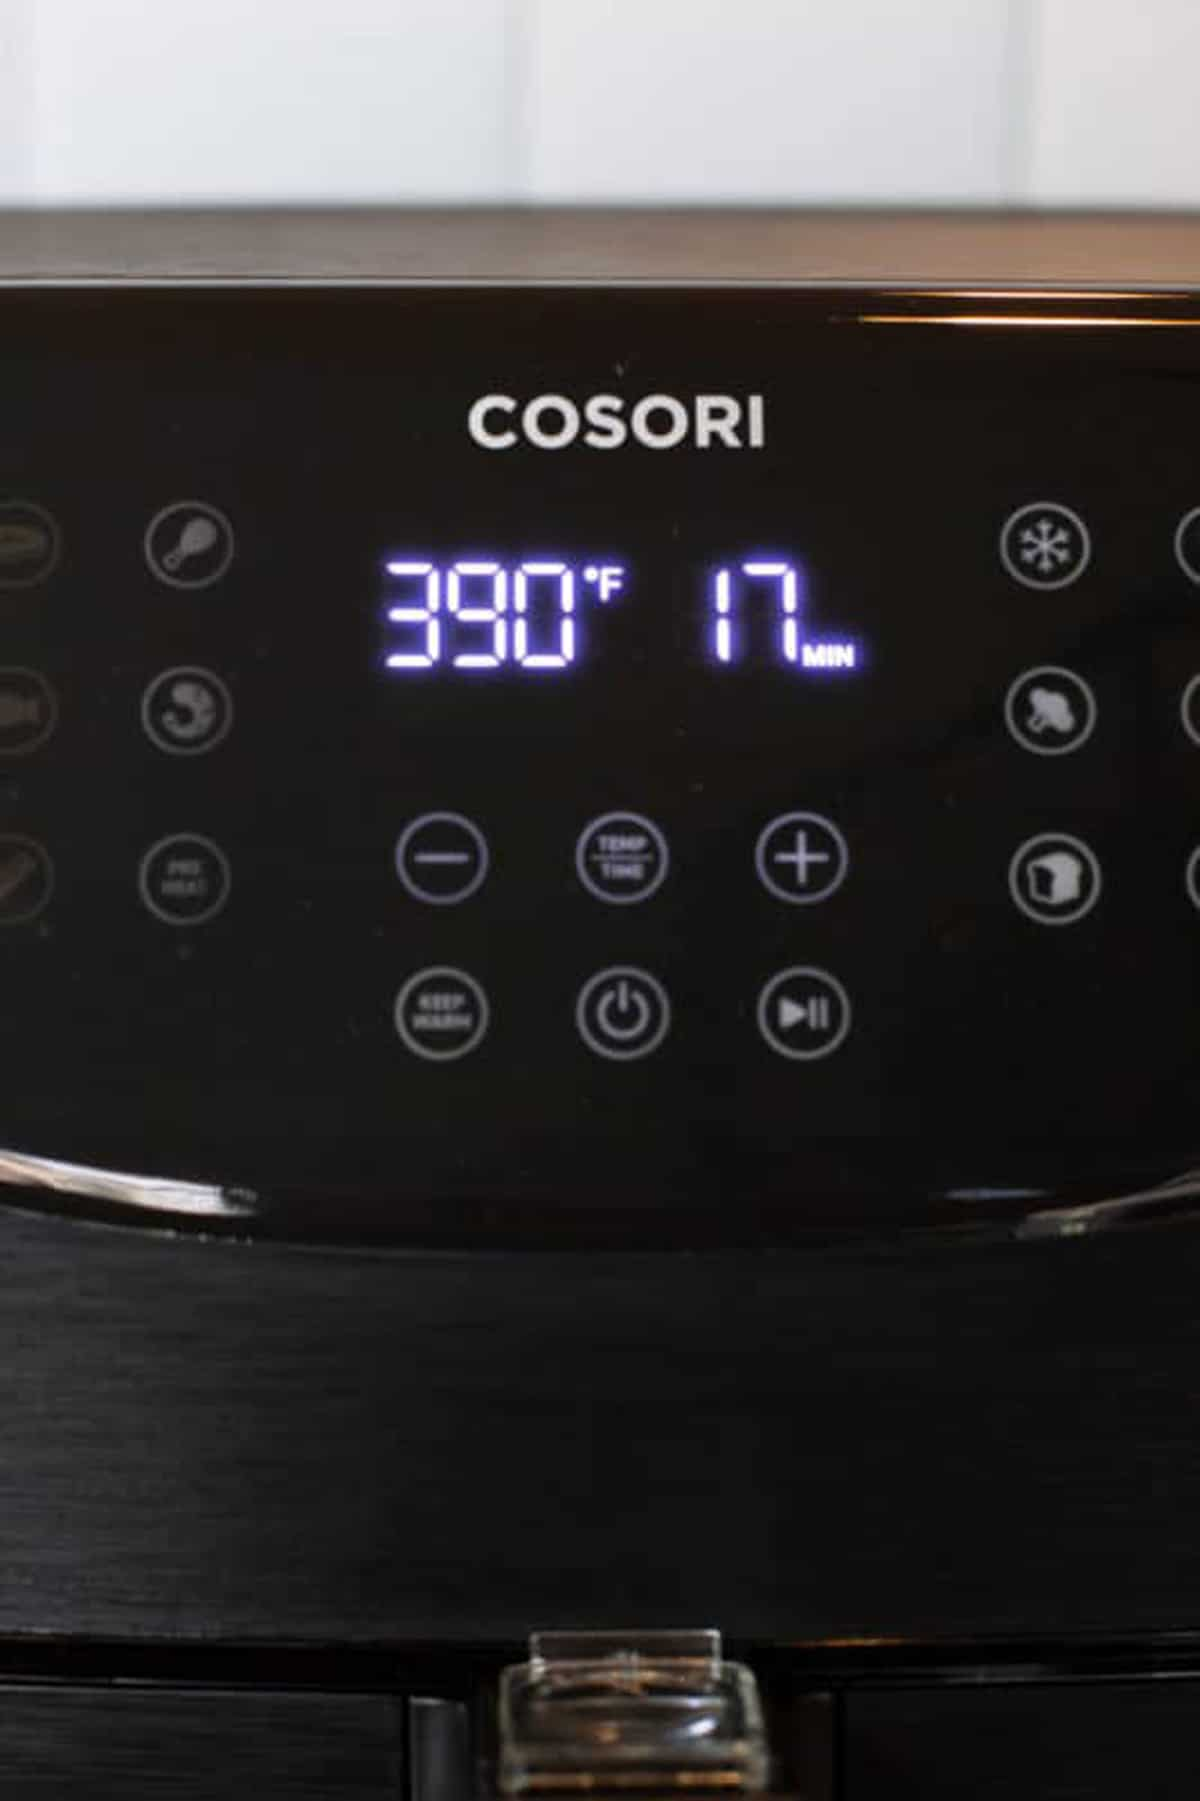 Cosori Air Fryer on a manual setting.